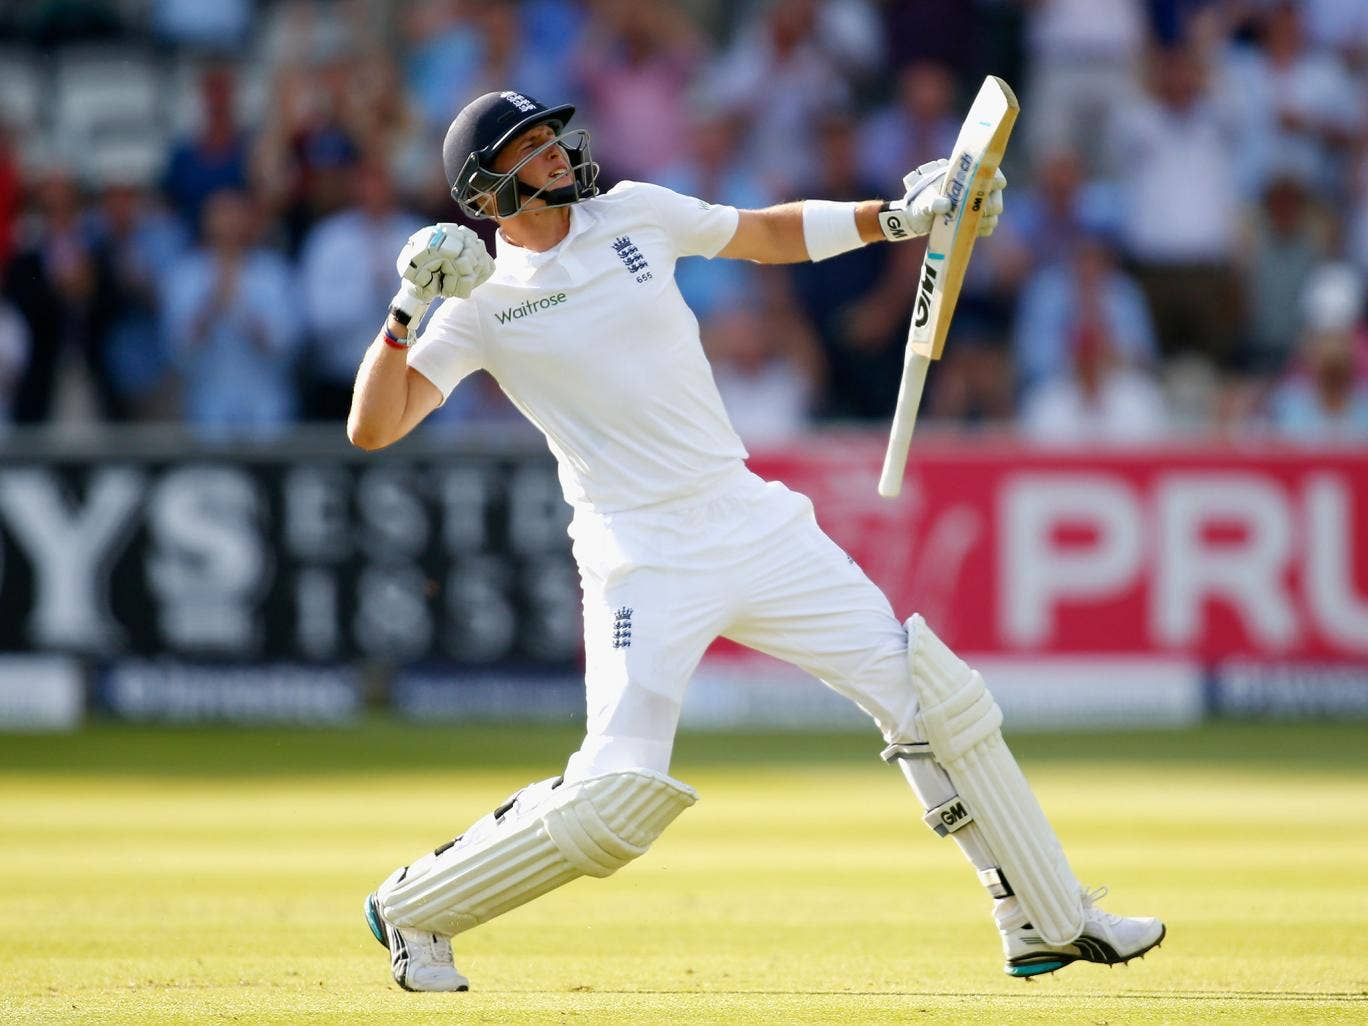 Joe Root of England celebrates reaching his century during day one of the 1st Investec Test match between England and Sri Lanka at Lord's